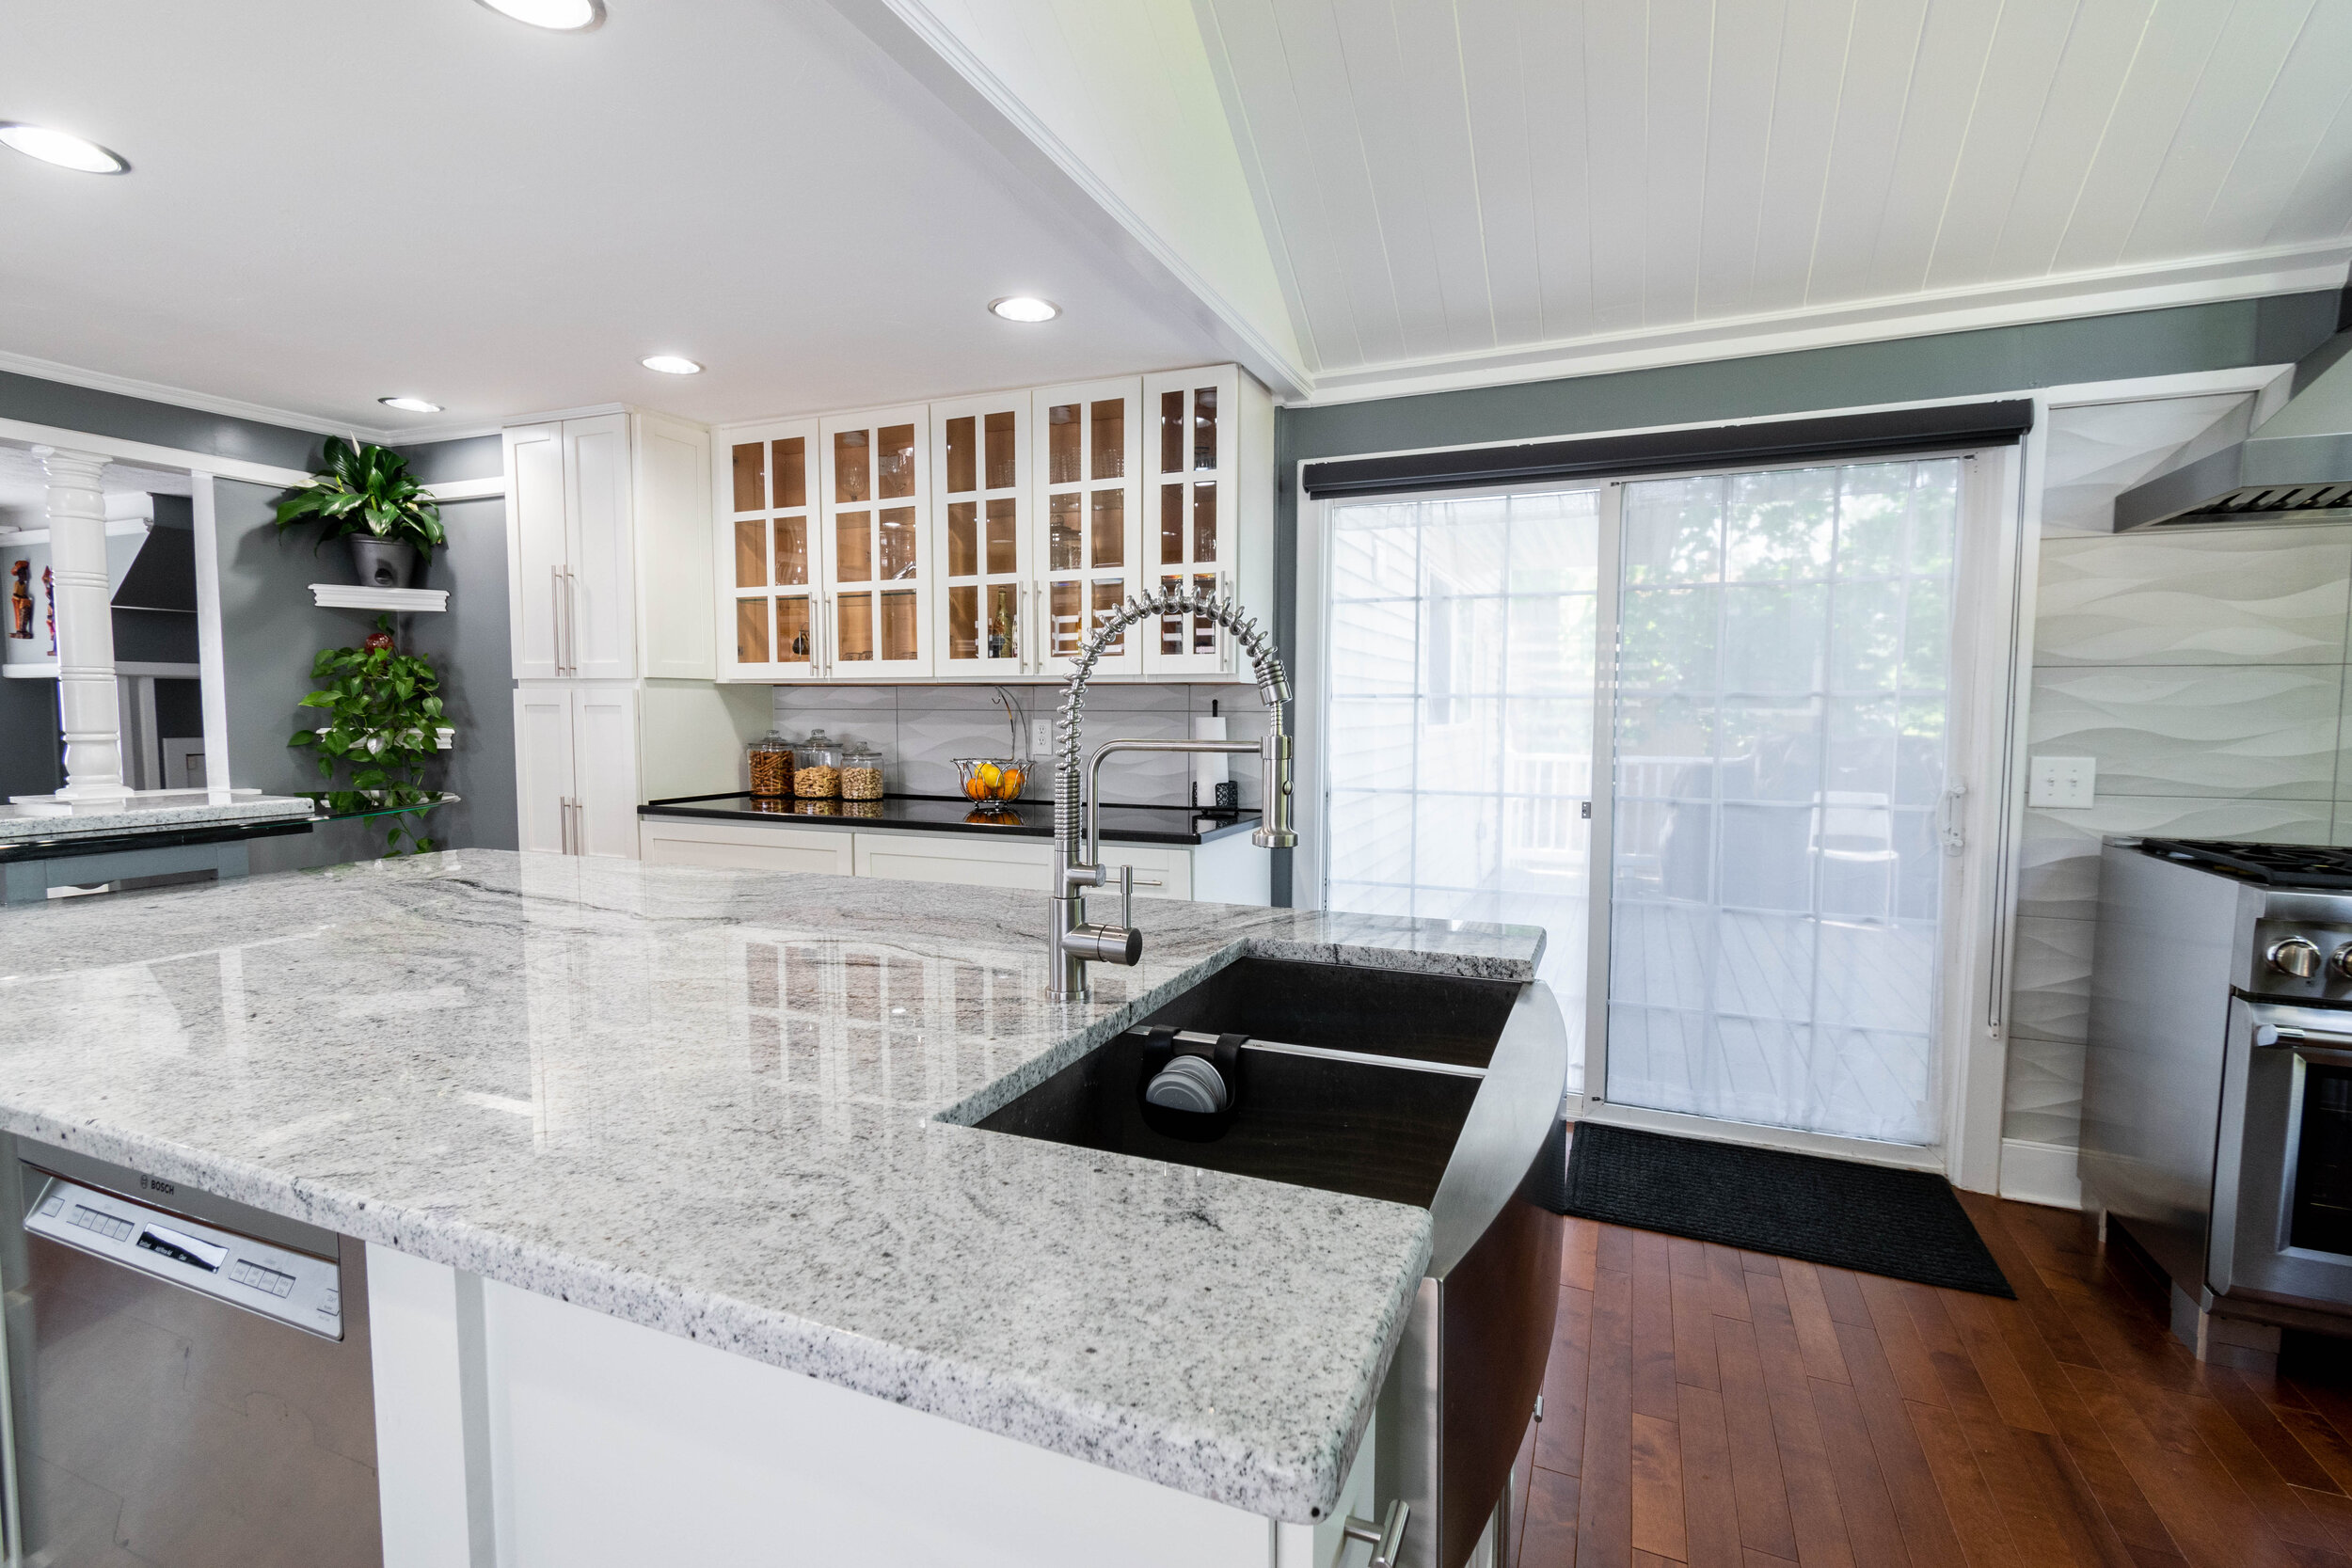 "Island Material: Viscount White Thickness, Finish & Stone Type: 3CM Polished Granite Edge: 1/4"" Bevel  Perimeter Material: Absolute Black Thickness, Finish & Stone Type: 3CM Polished Granite  Edge: 1/4"" Bevel  Sink: Client's sink - Farmer/Apron"